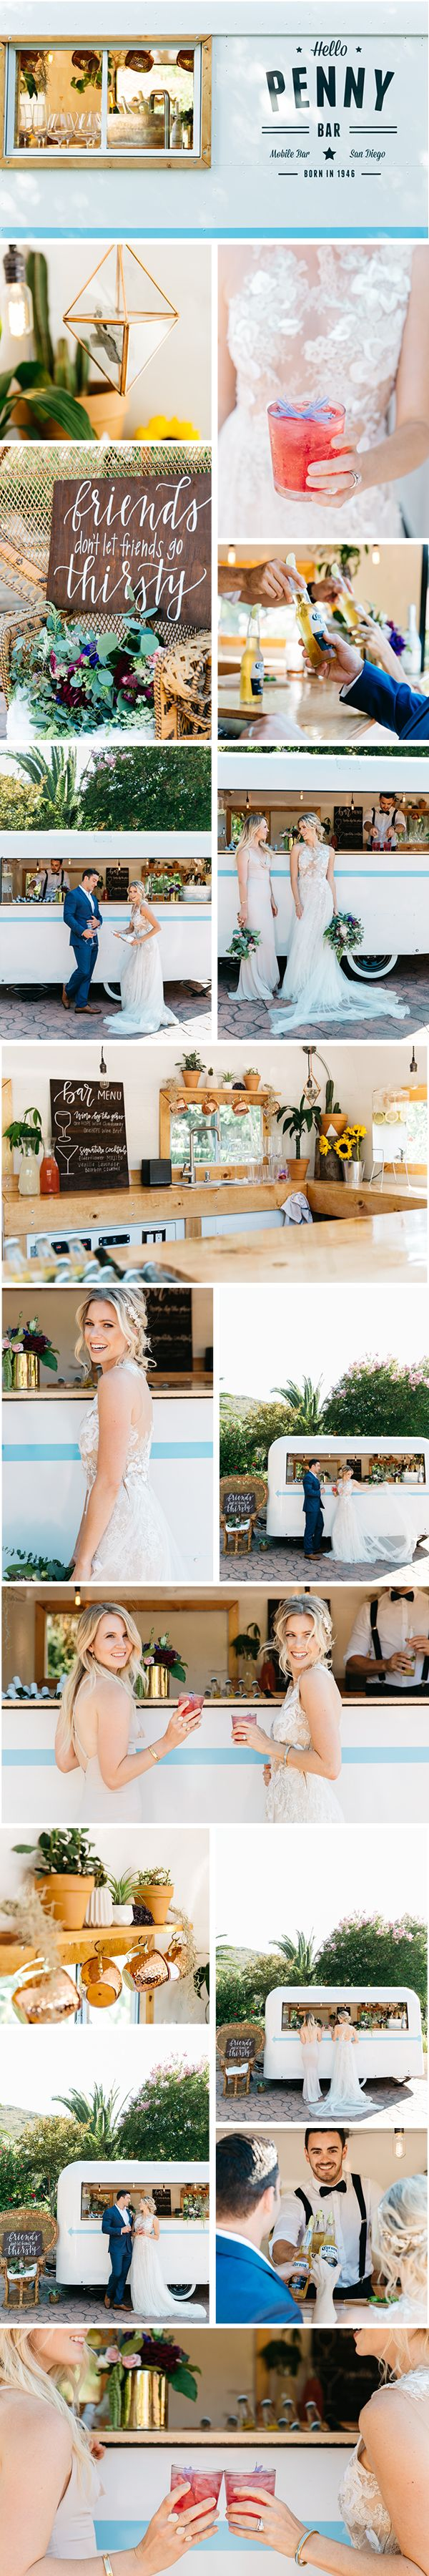 How cute is this mobile bar named Penny?! Head to www.kyliechevalier.com/blog for more inspo!